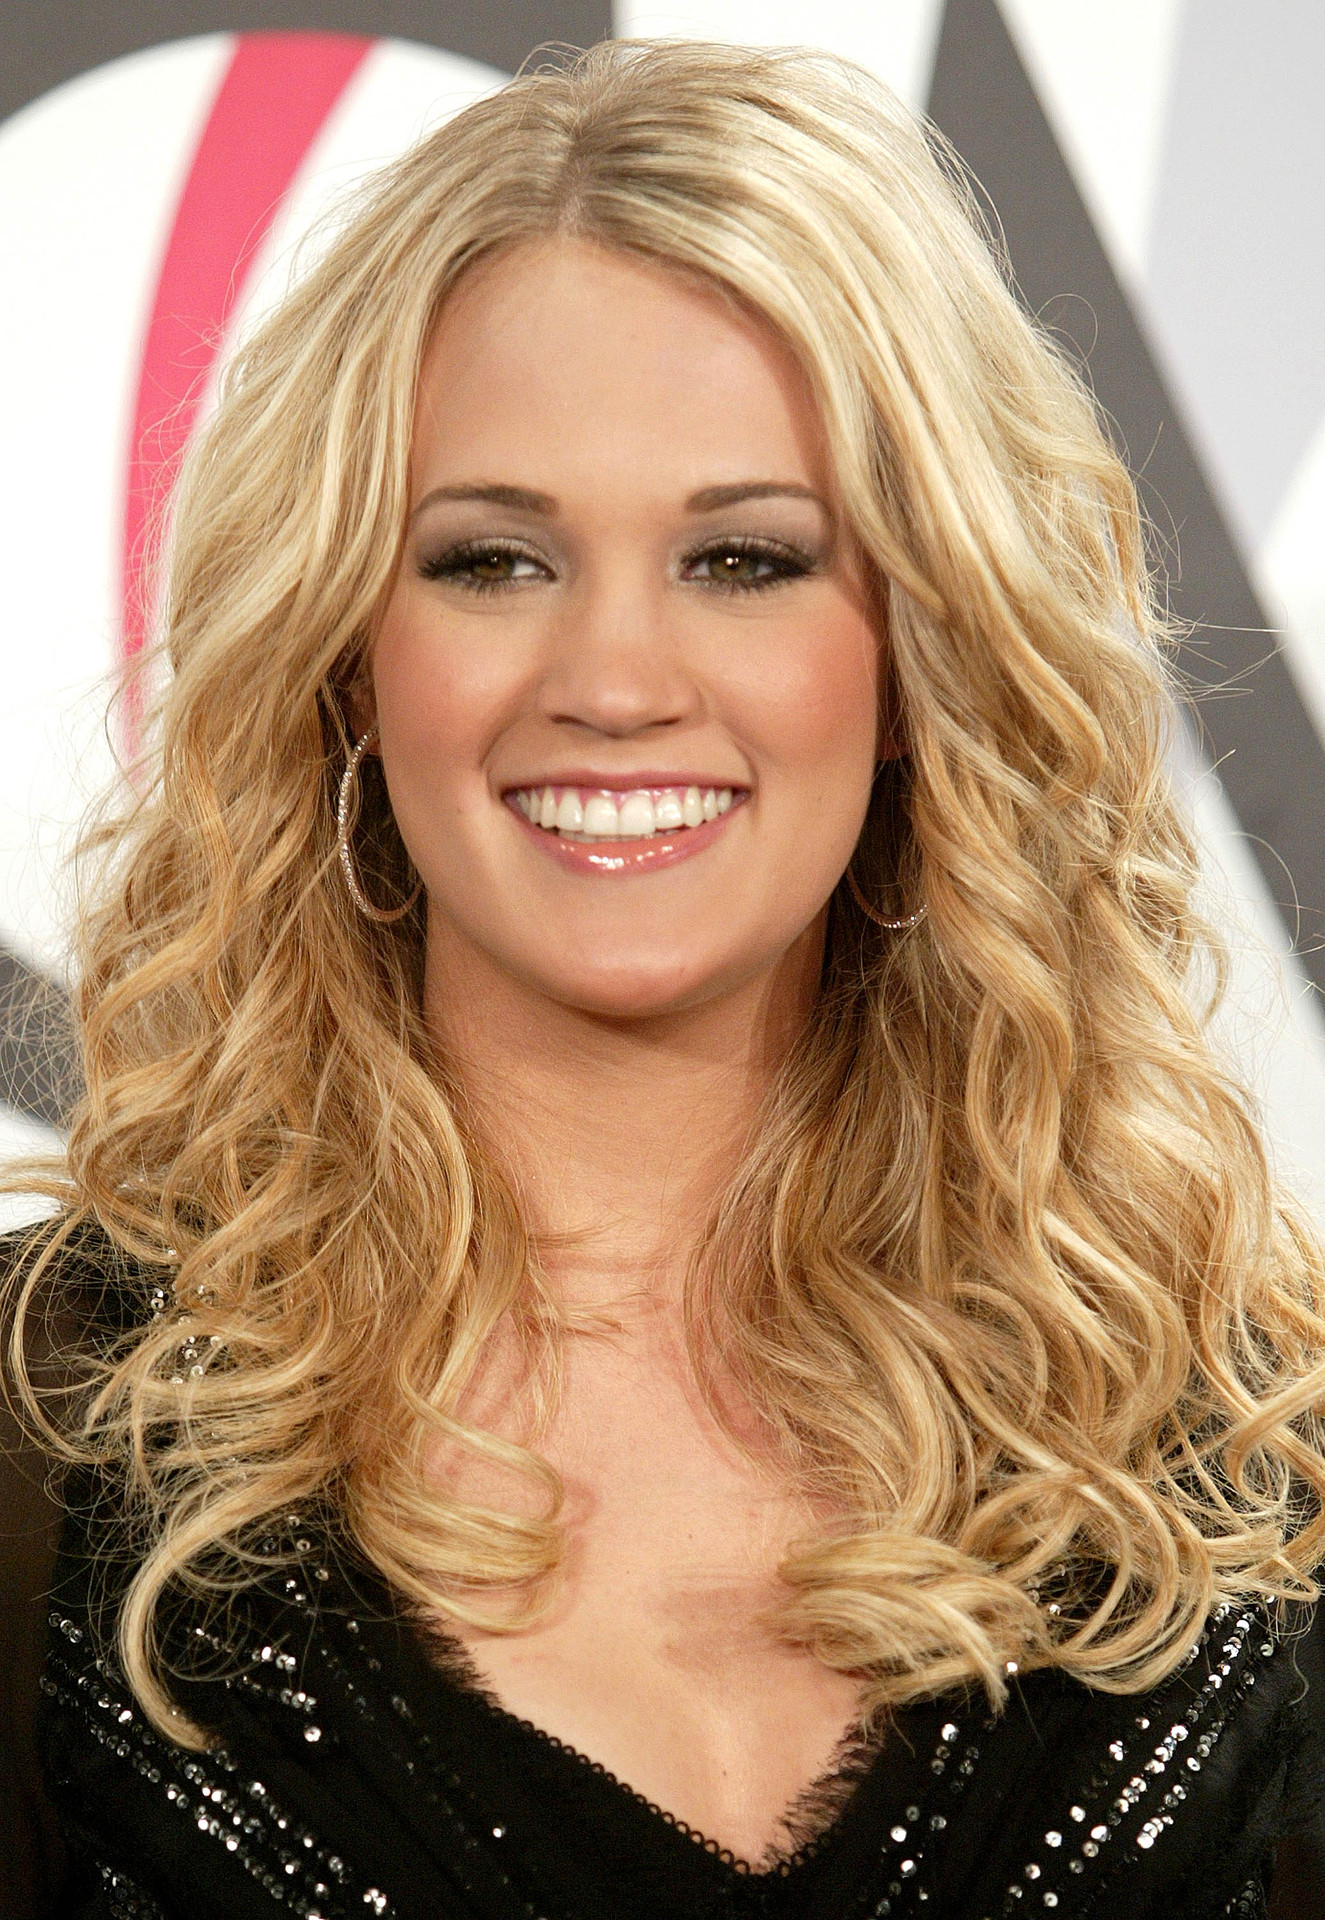 Carrie Underwood carrie underwood 36734 1325 1920